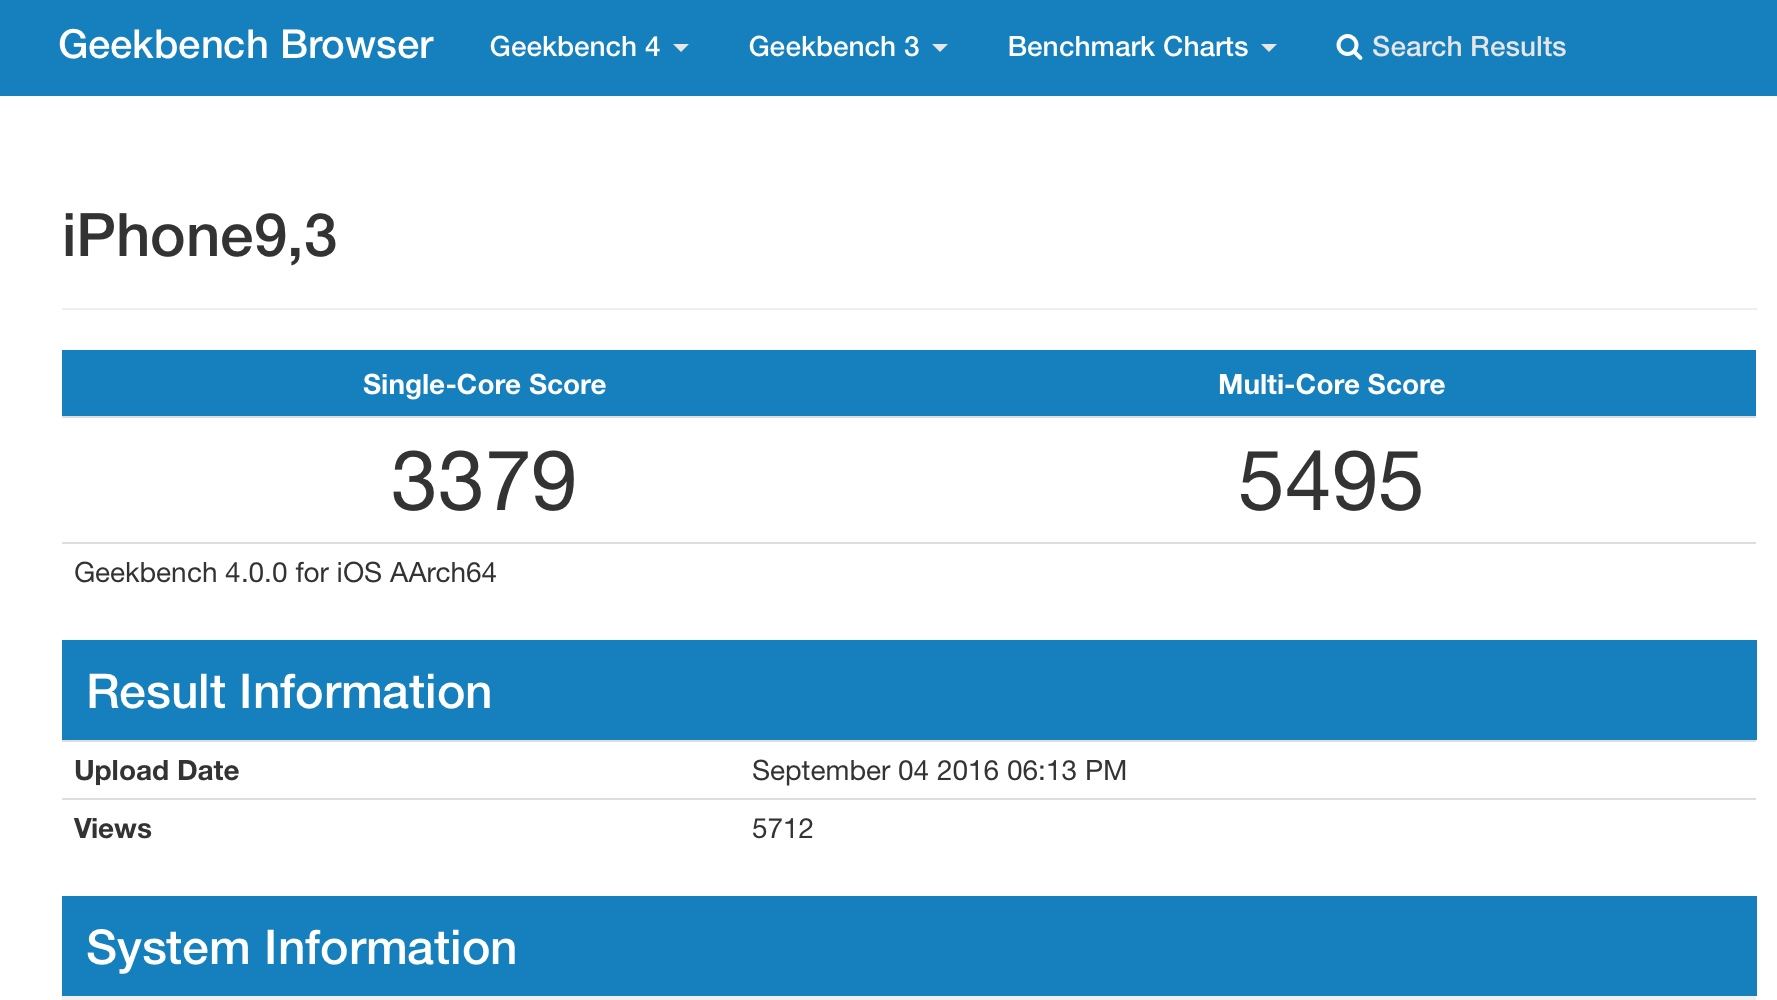 Geekbench 3 Vs 4 GeekBench 4 Geekbench Discussion Area